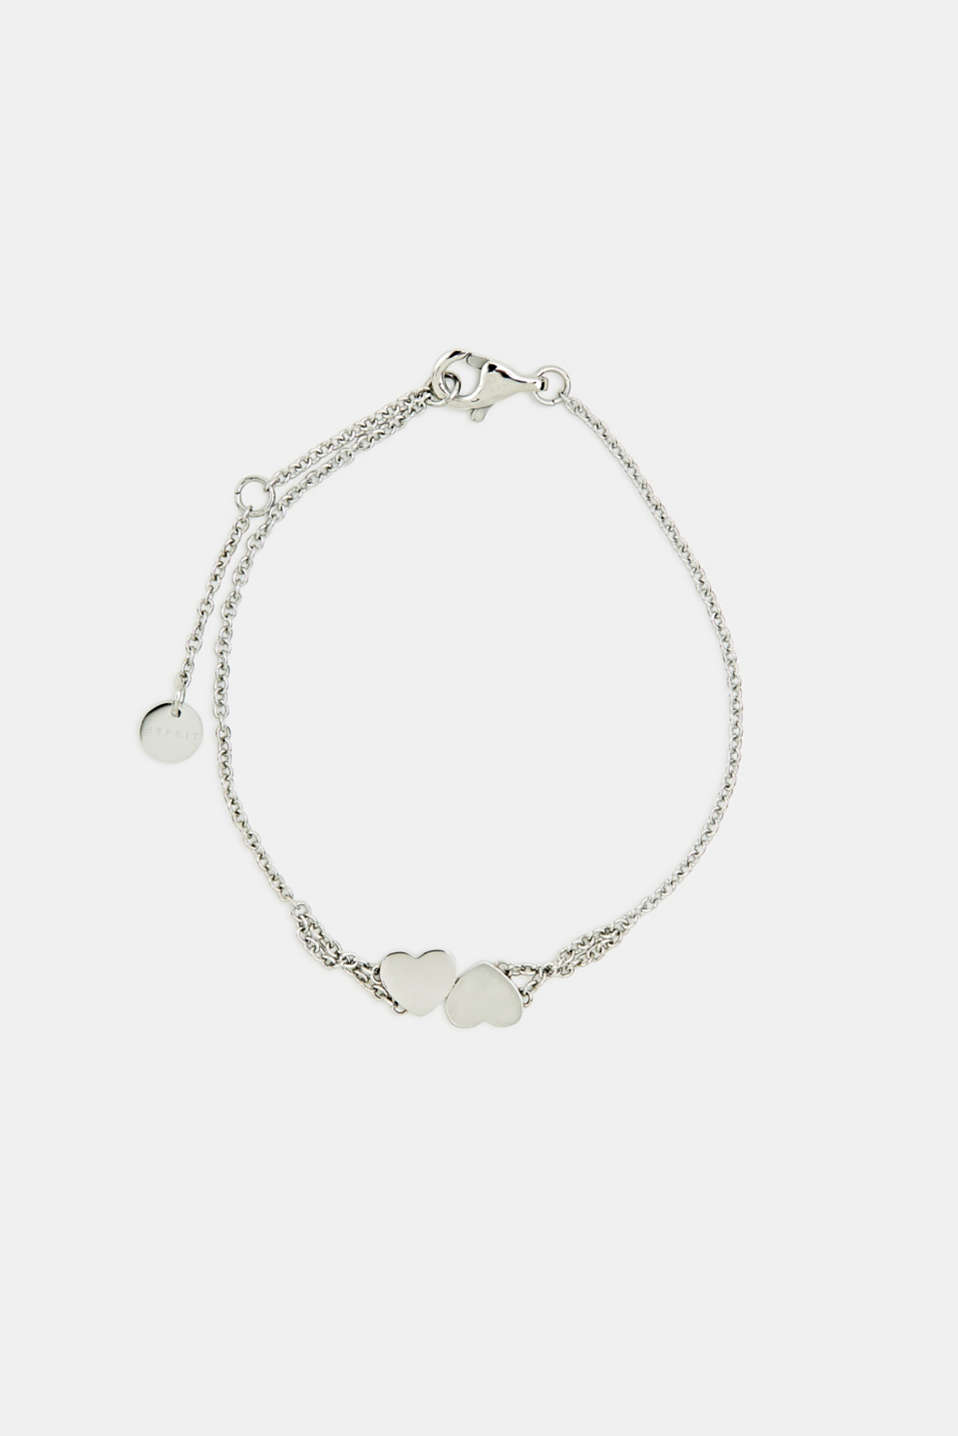 Esprit - Bracelet with heart charm, stainless steel